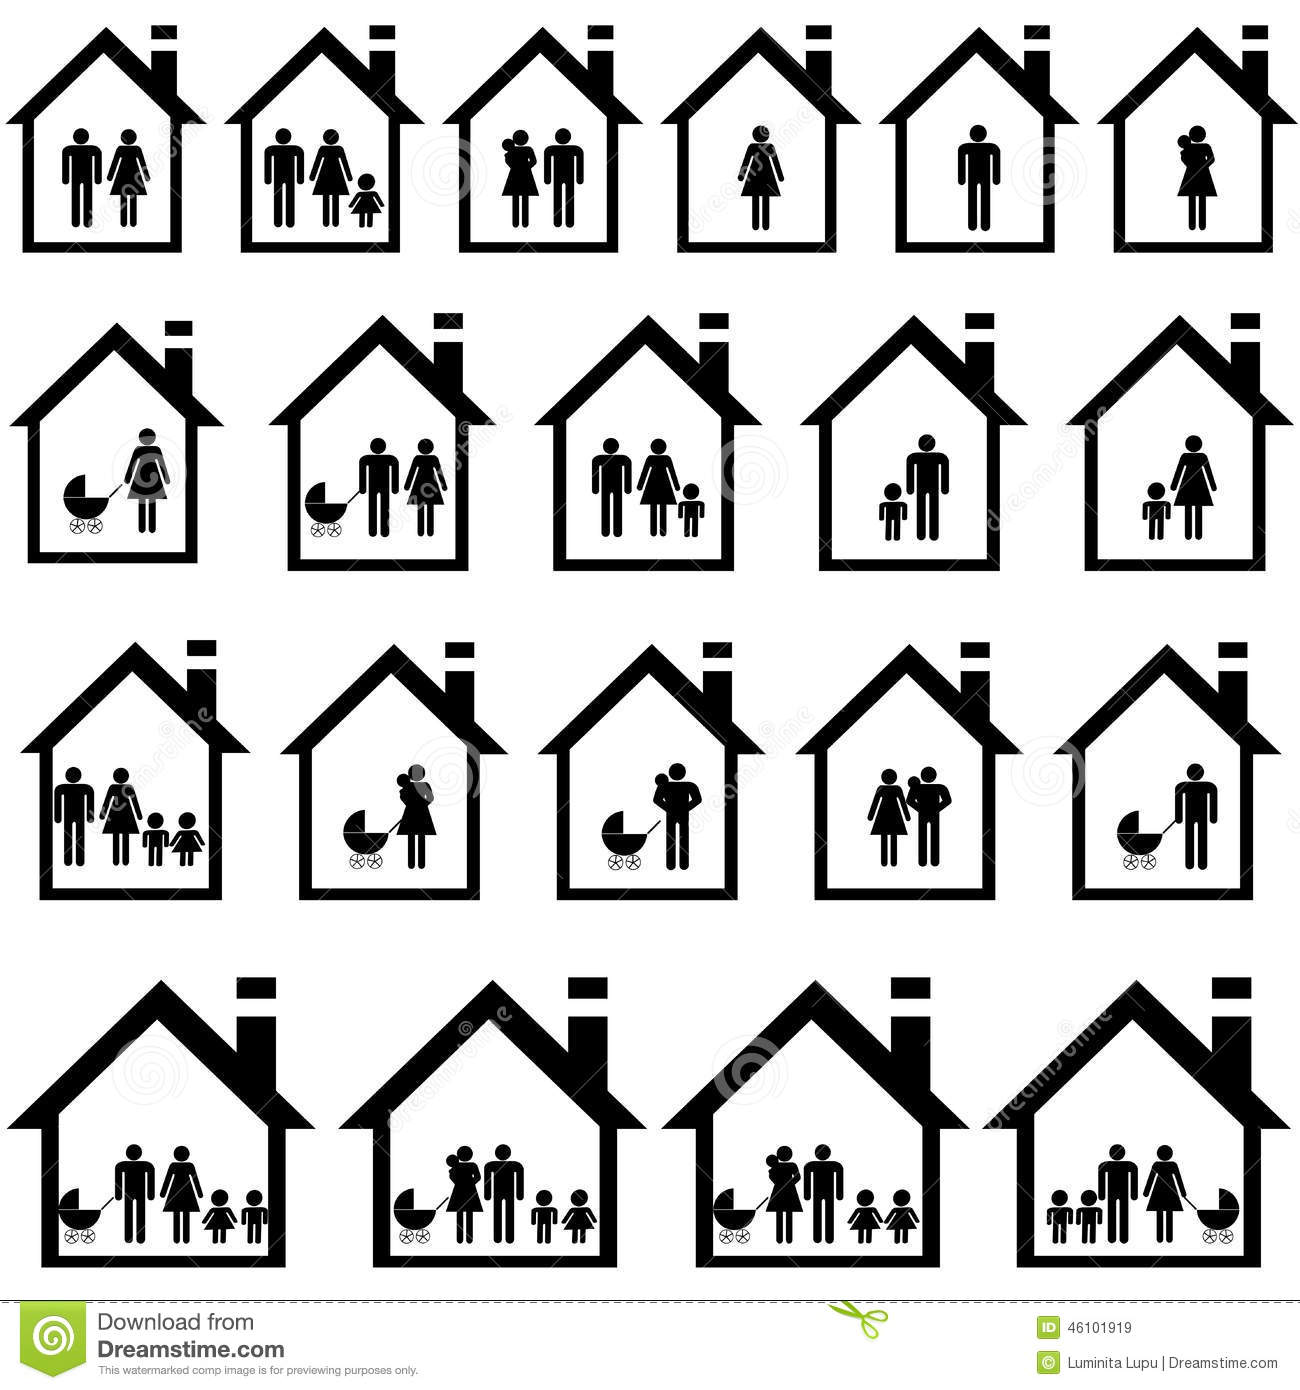 9910 together with Stock Illustration Pictograms Families Houses White Background Image46101919 in addition Stock Photo Field Flowers Herbs Plants Vector Traced Image908380 besides Stock Photo Coloring Book Kids 12 Image7879870 together with Stock Photos Arabic Ornament Vector Illustration Decoration Elements Design Image39726833. on community vector graphics